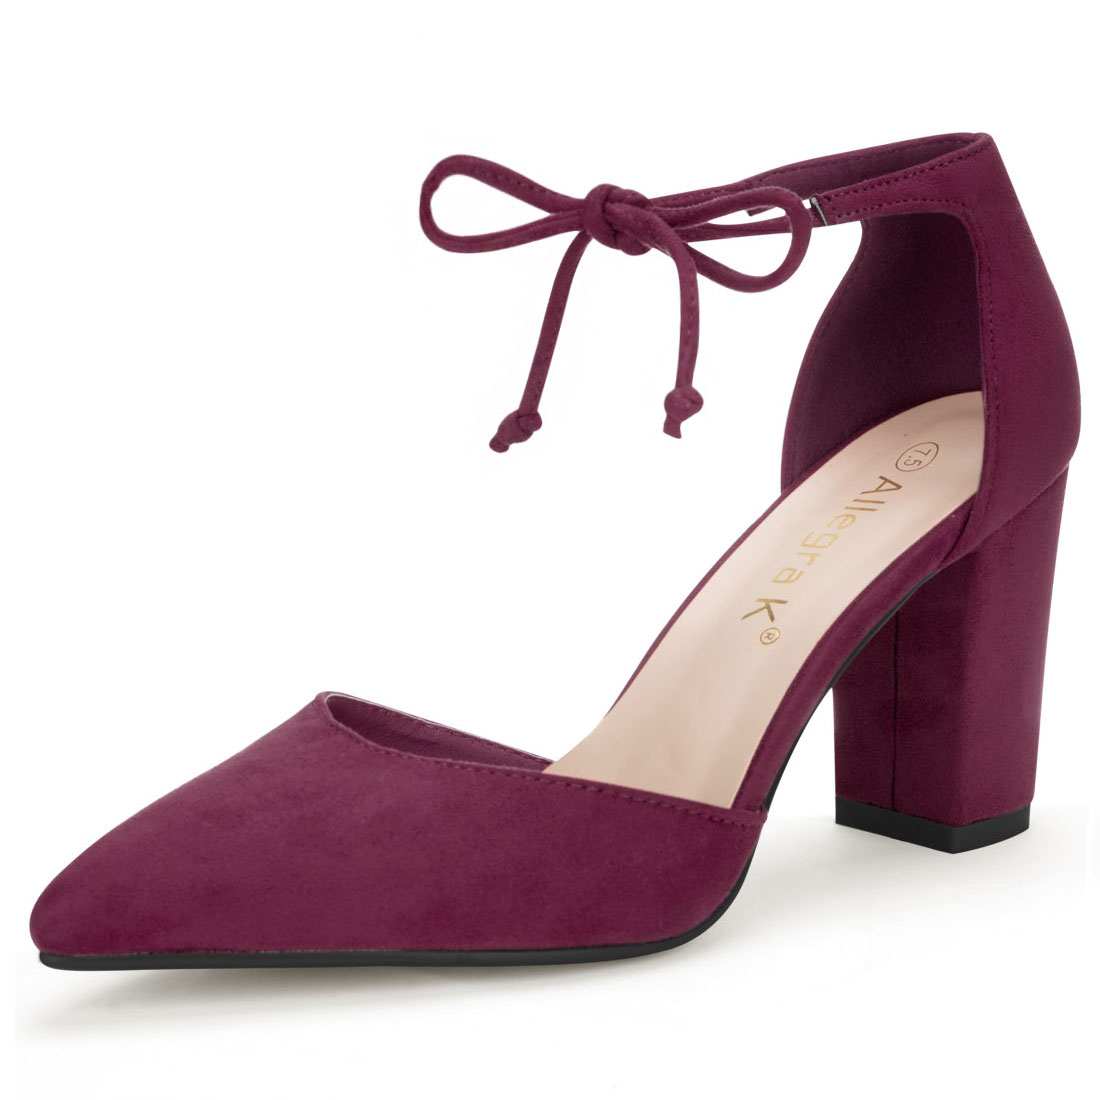 Allegra K Women's Ankle Tie Chunky Heel Pointed Toe Dress Pumps Burgundy US 10